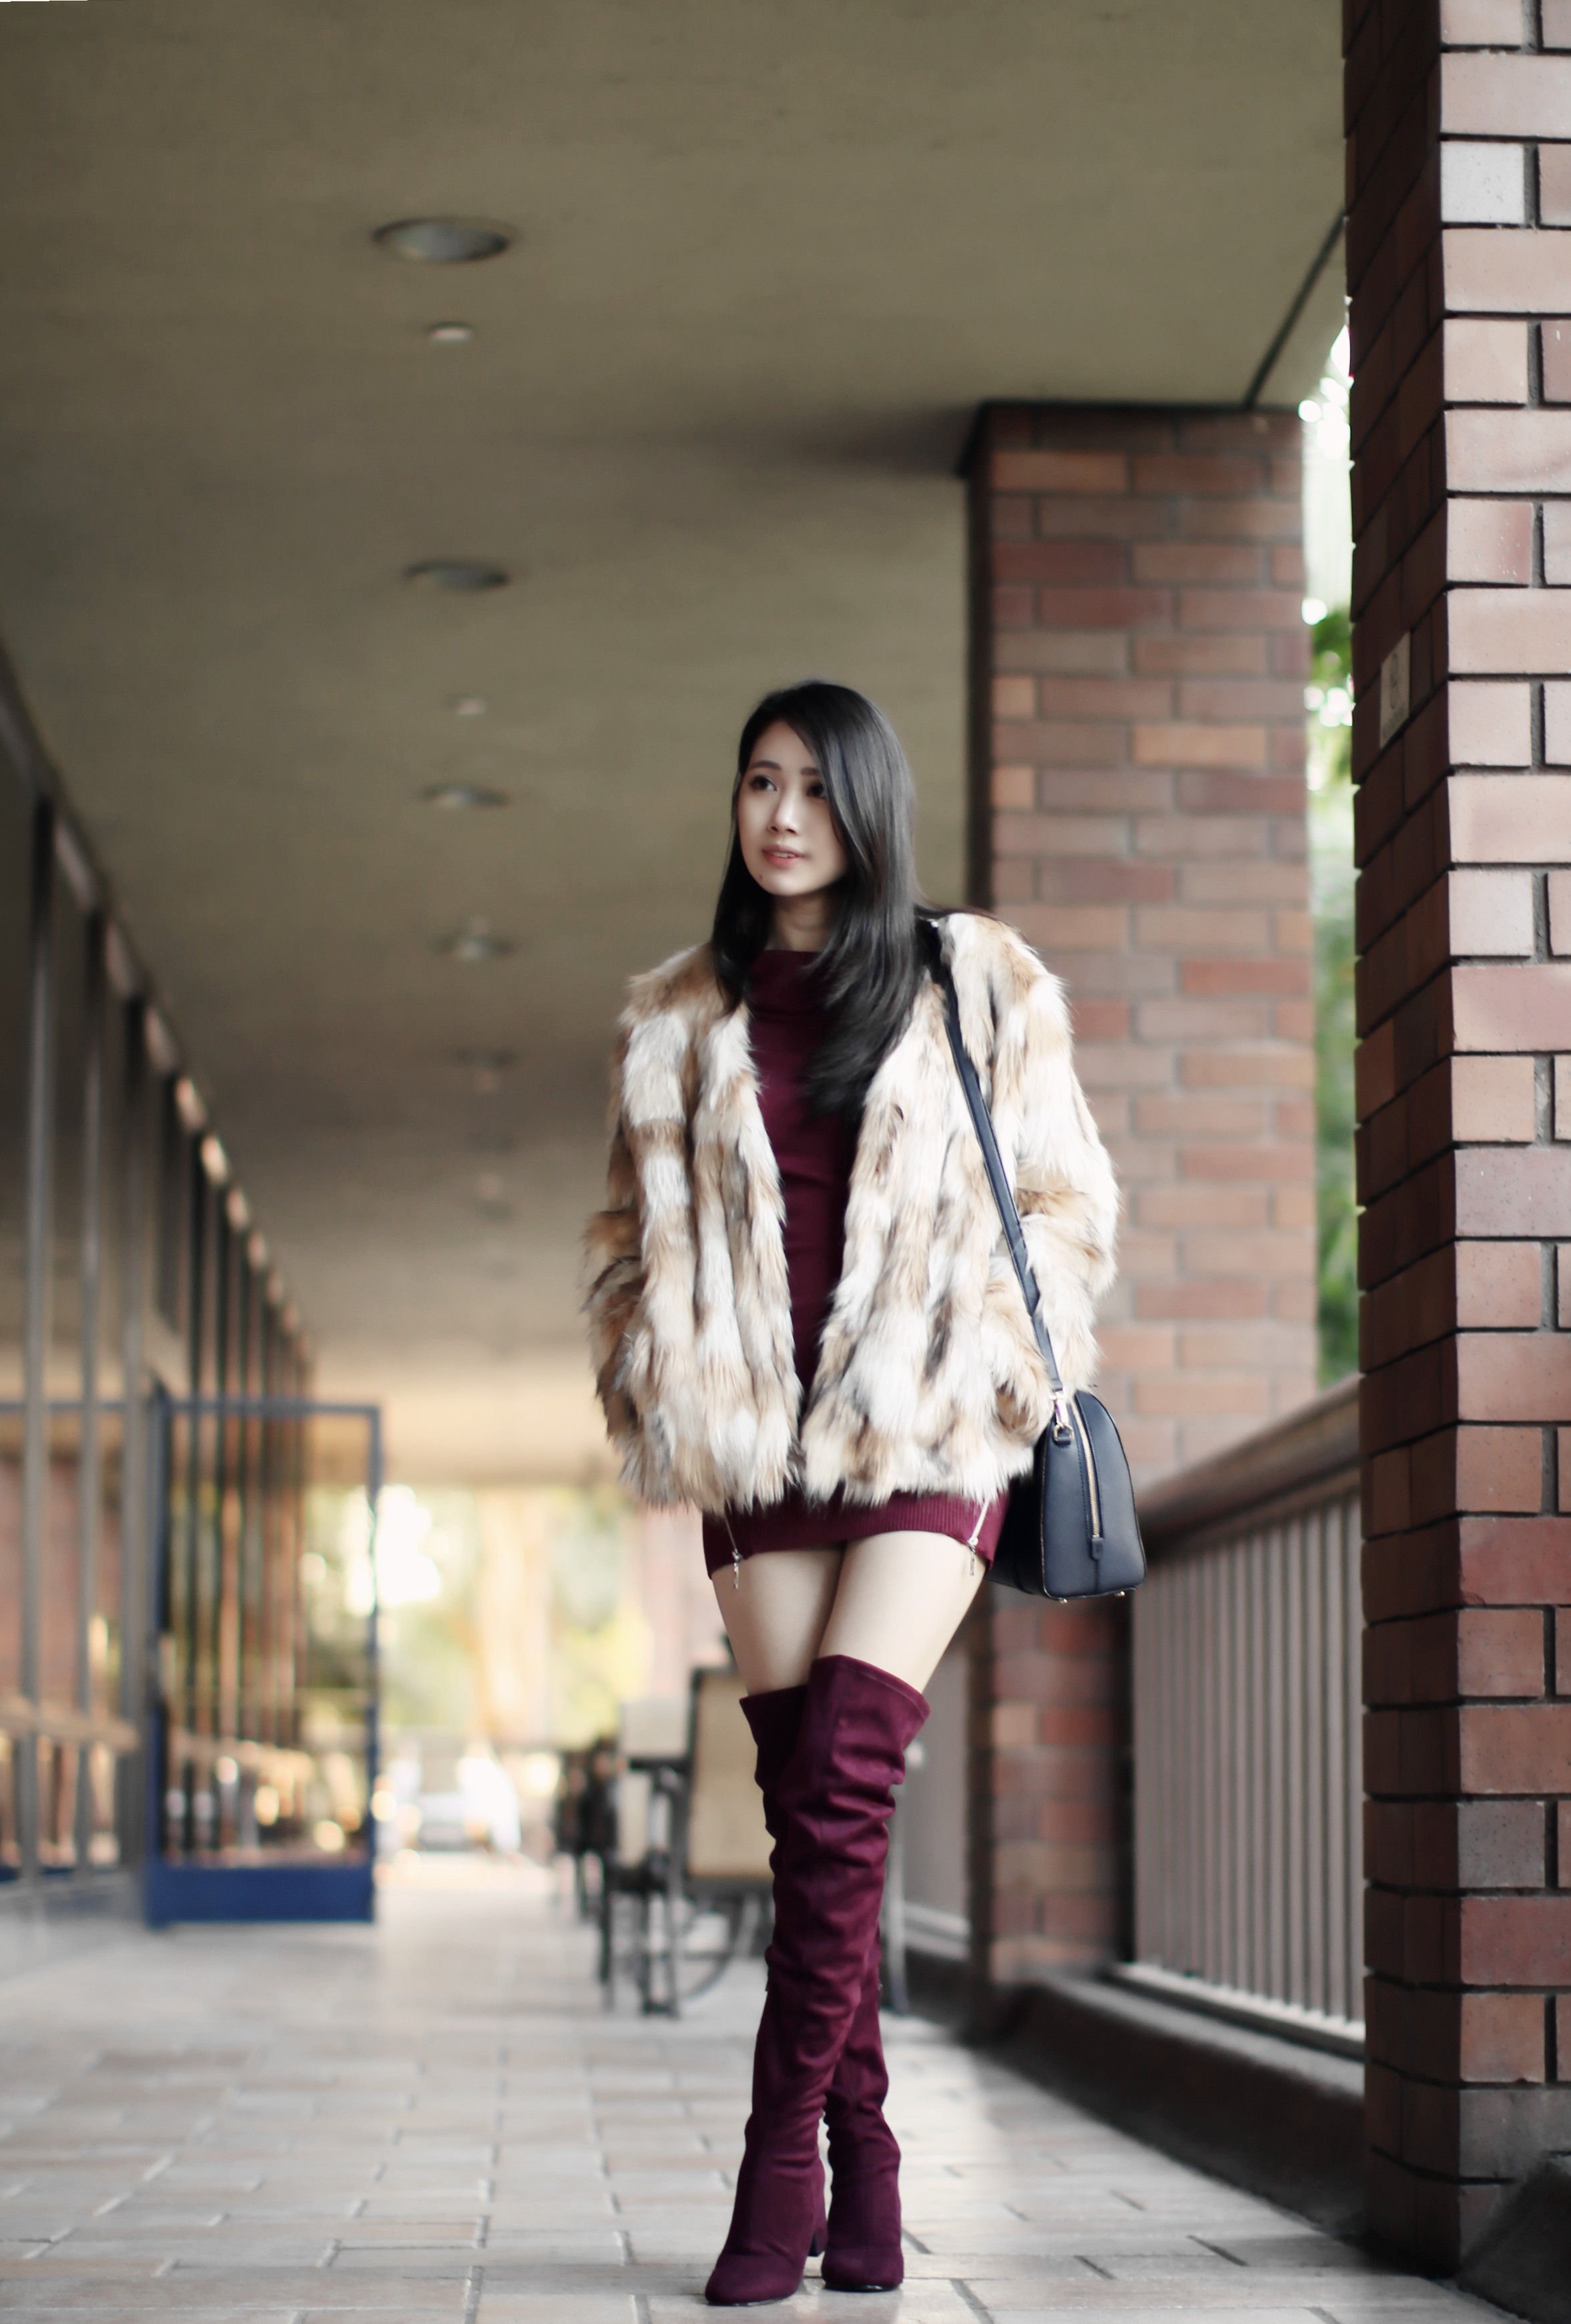 3784-ootd-fashion-style-outfitoftheday-wiwt-vincecamuto-fauxfur-otkboots-fallfashion-forever21-f21-hollister-koreanfashion-sponsored-elizabeeetht-clothestoyouuu